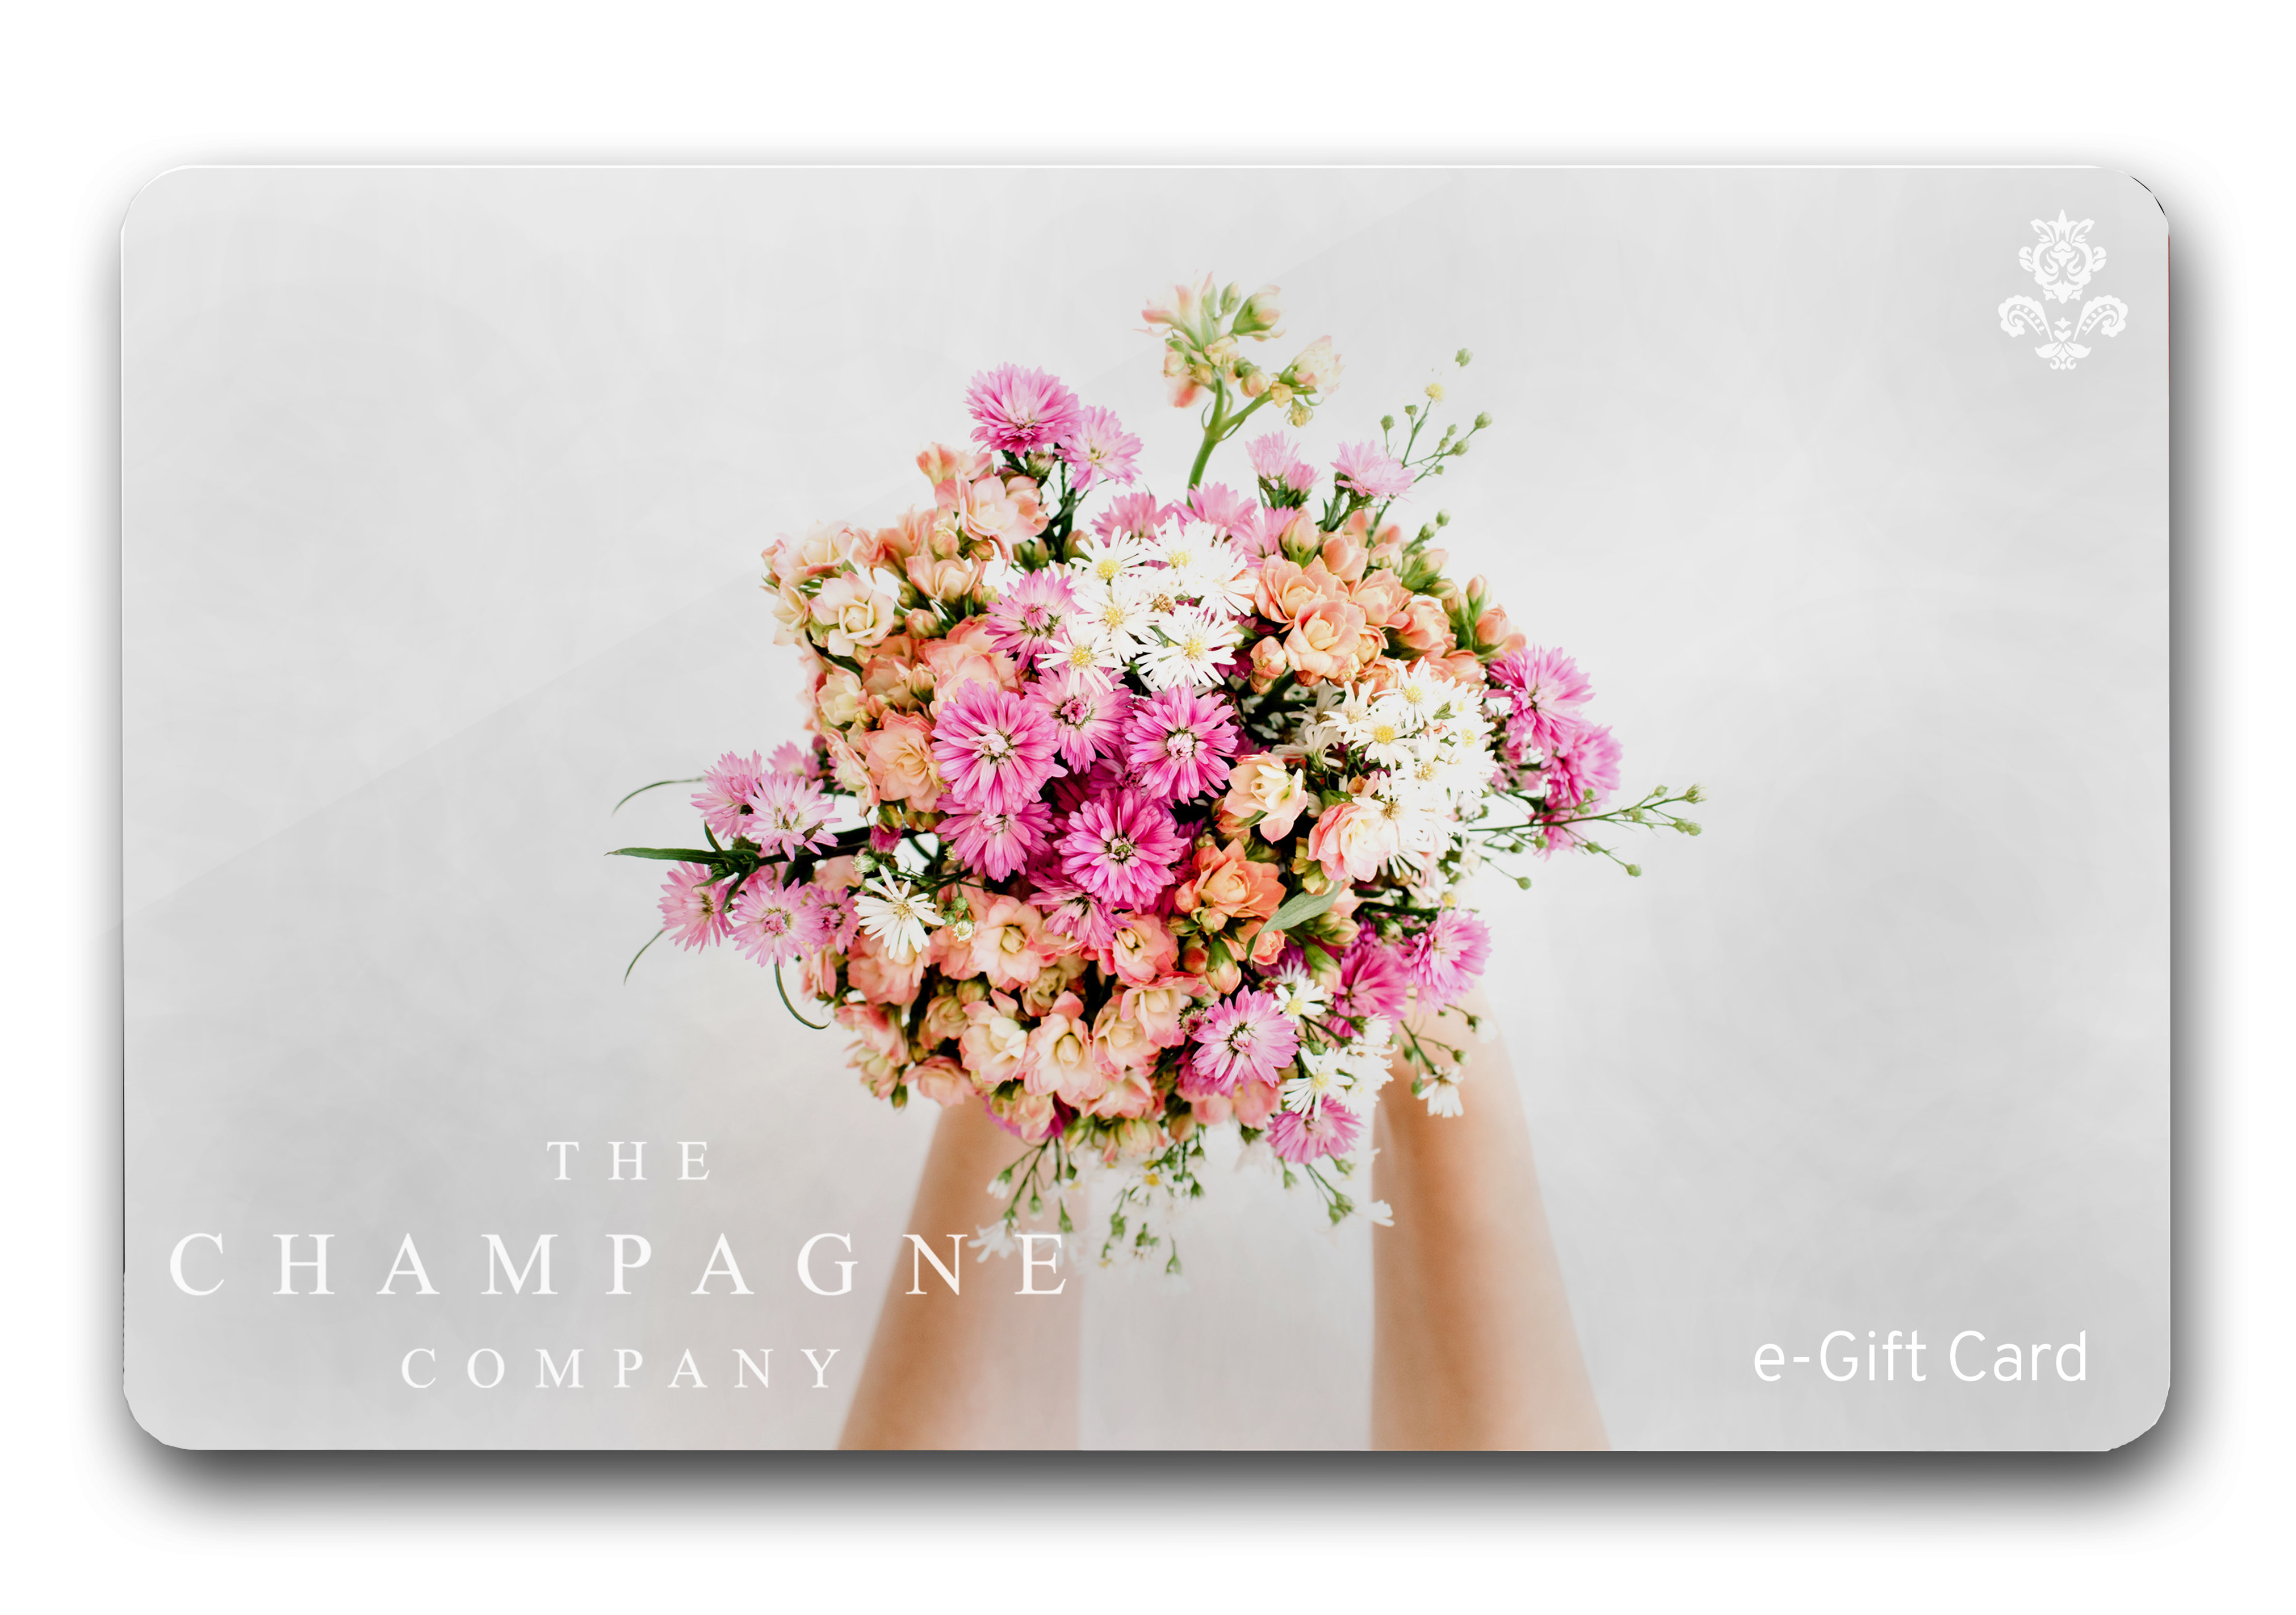 TCC Gift card - Mother's Day Bunch of Flowers eGift Card